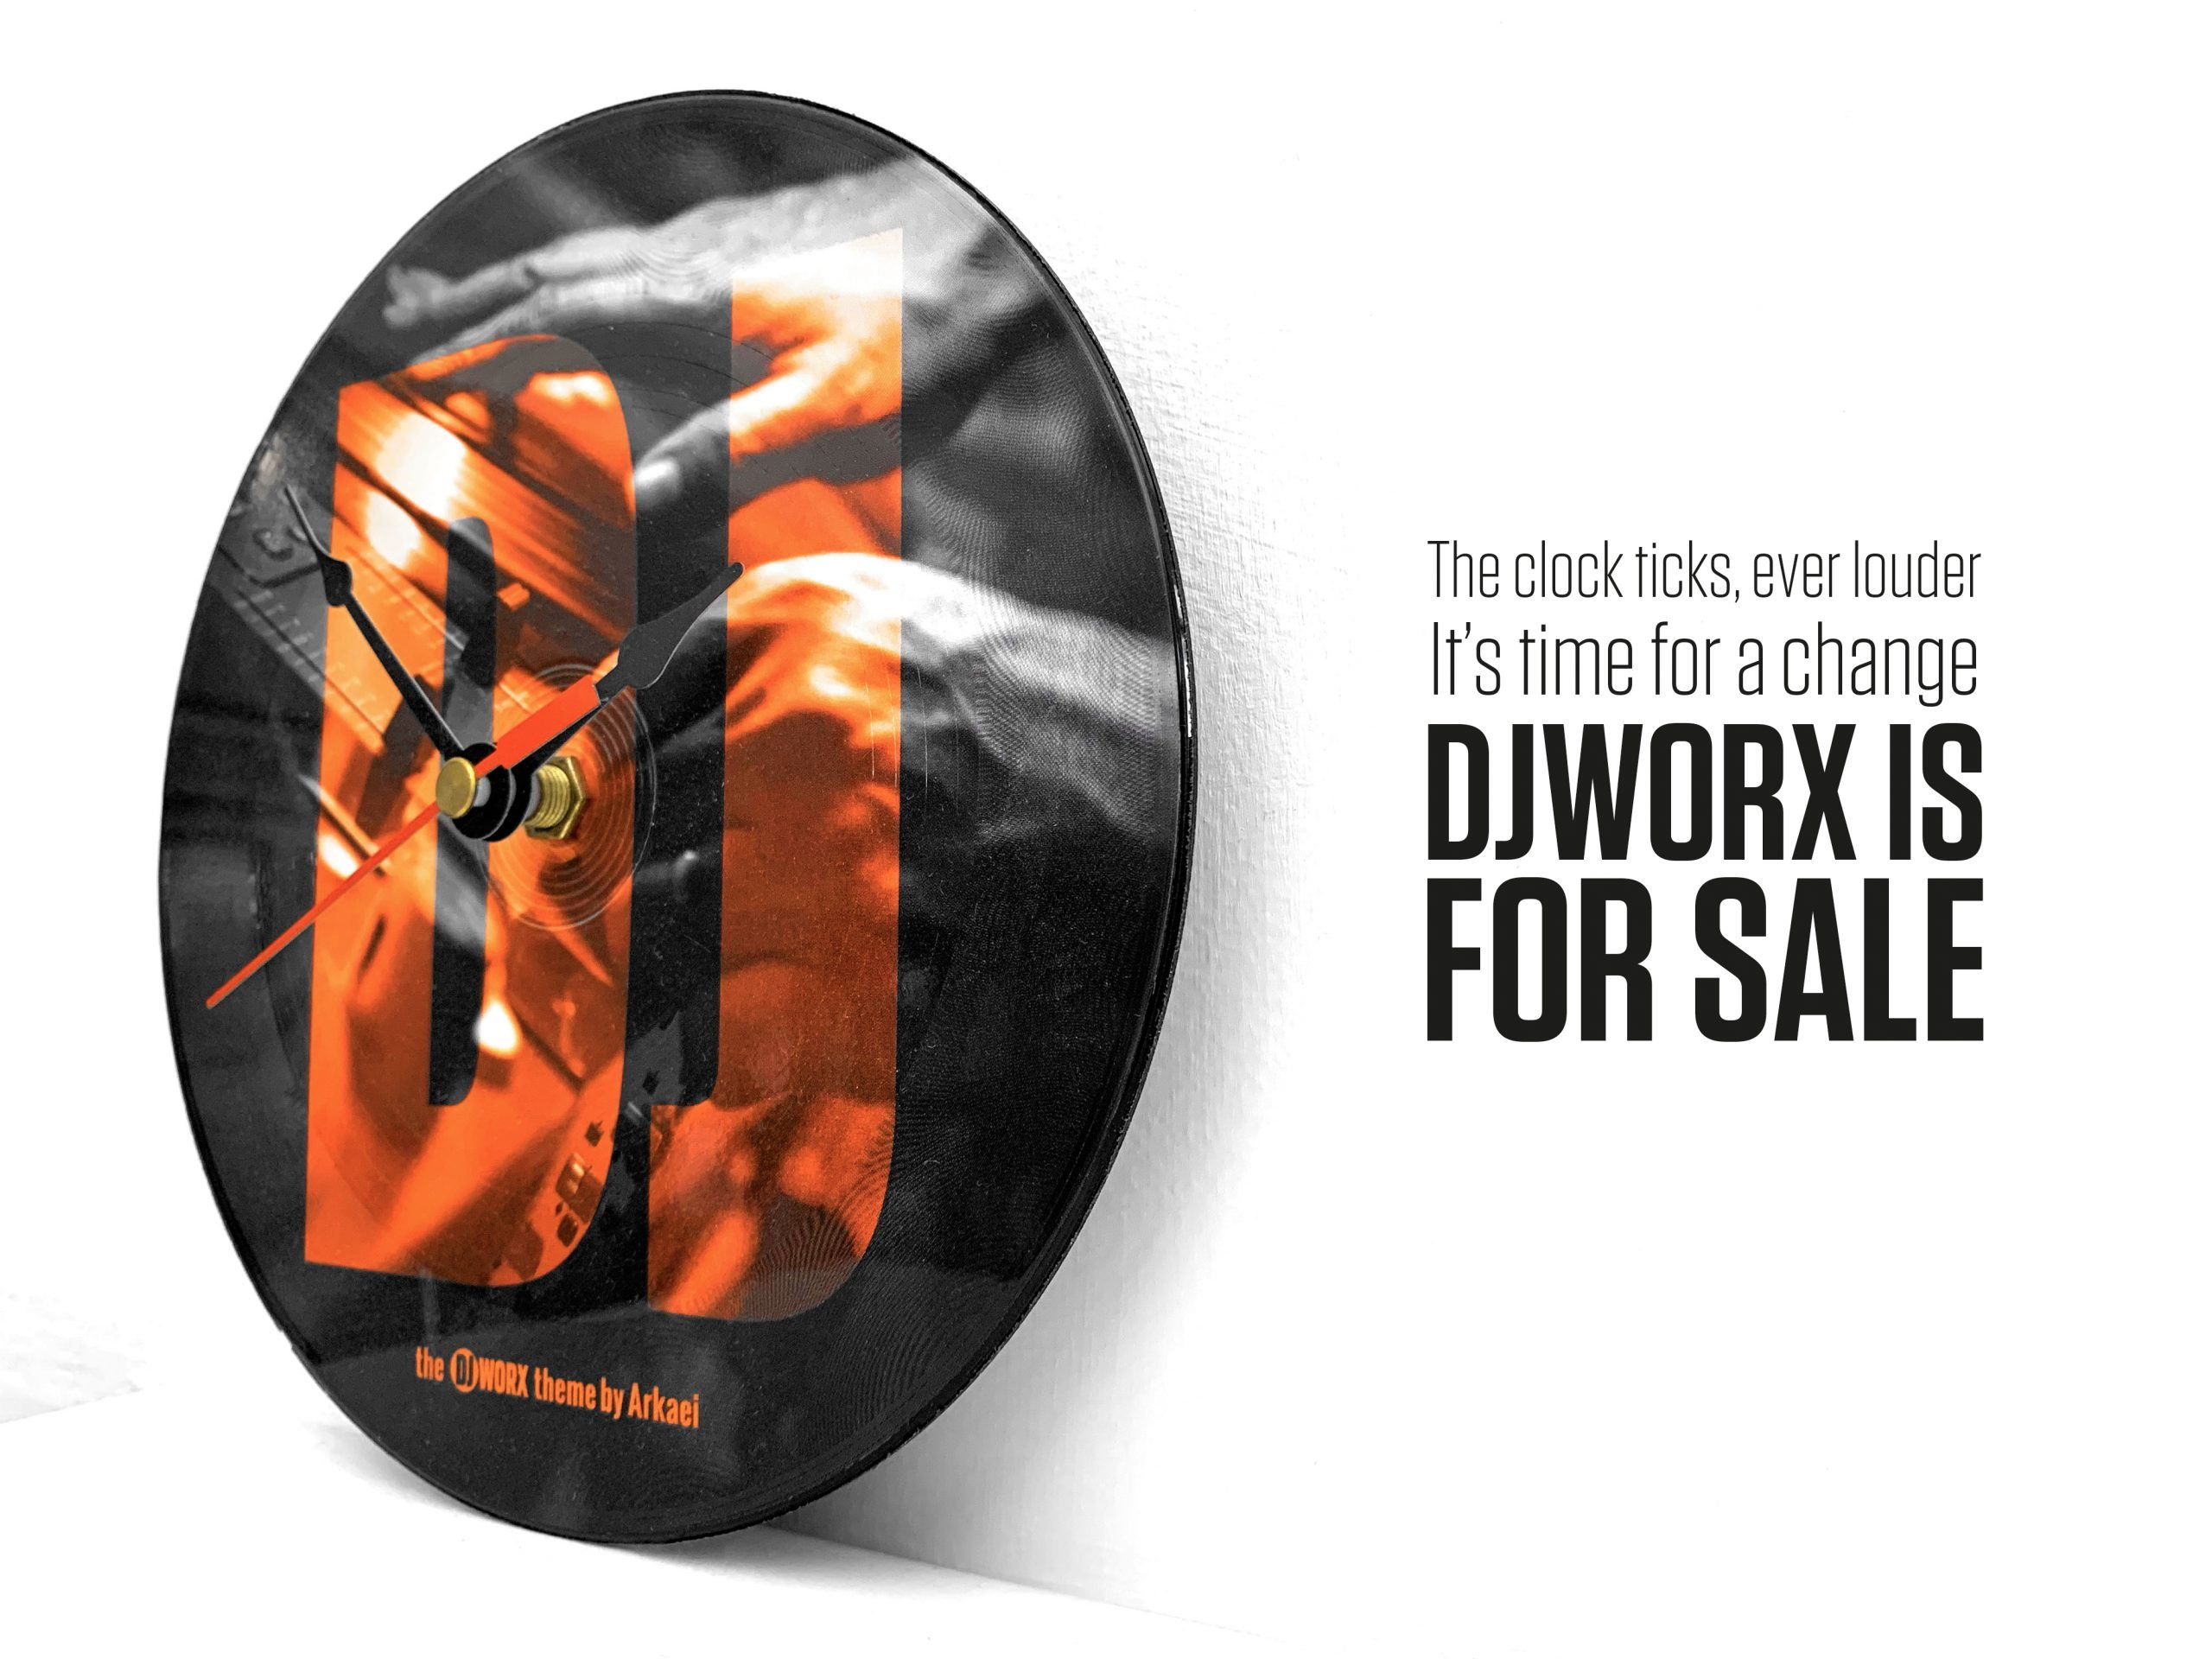 ANNOUNCEMENT: DJWORX is for sale 3